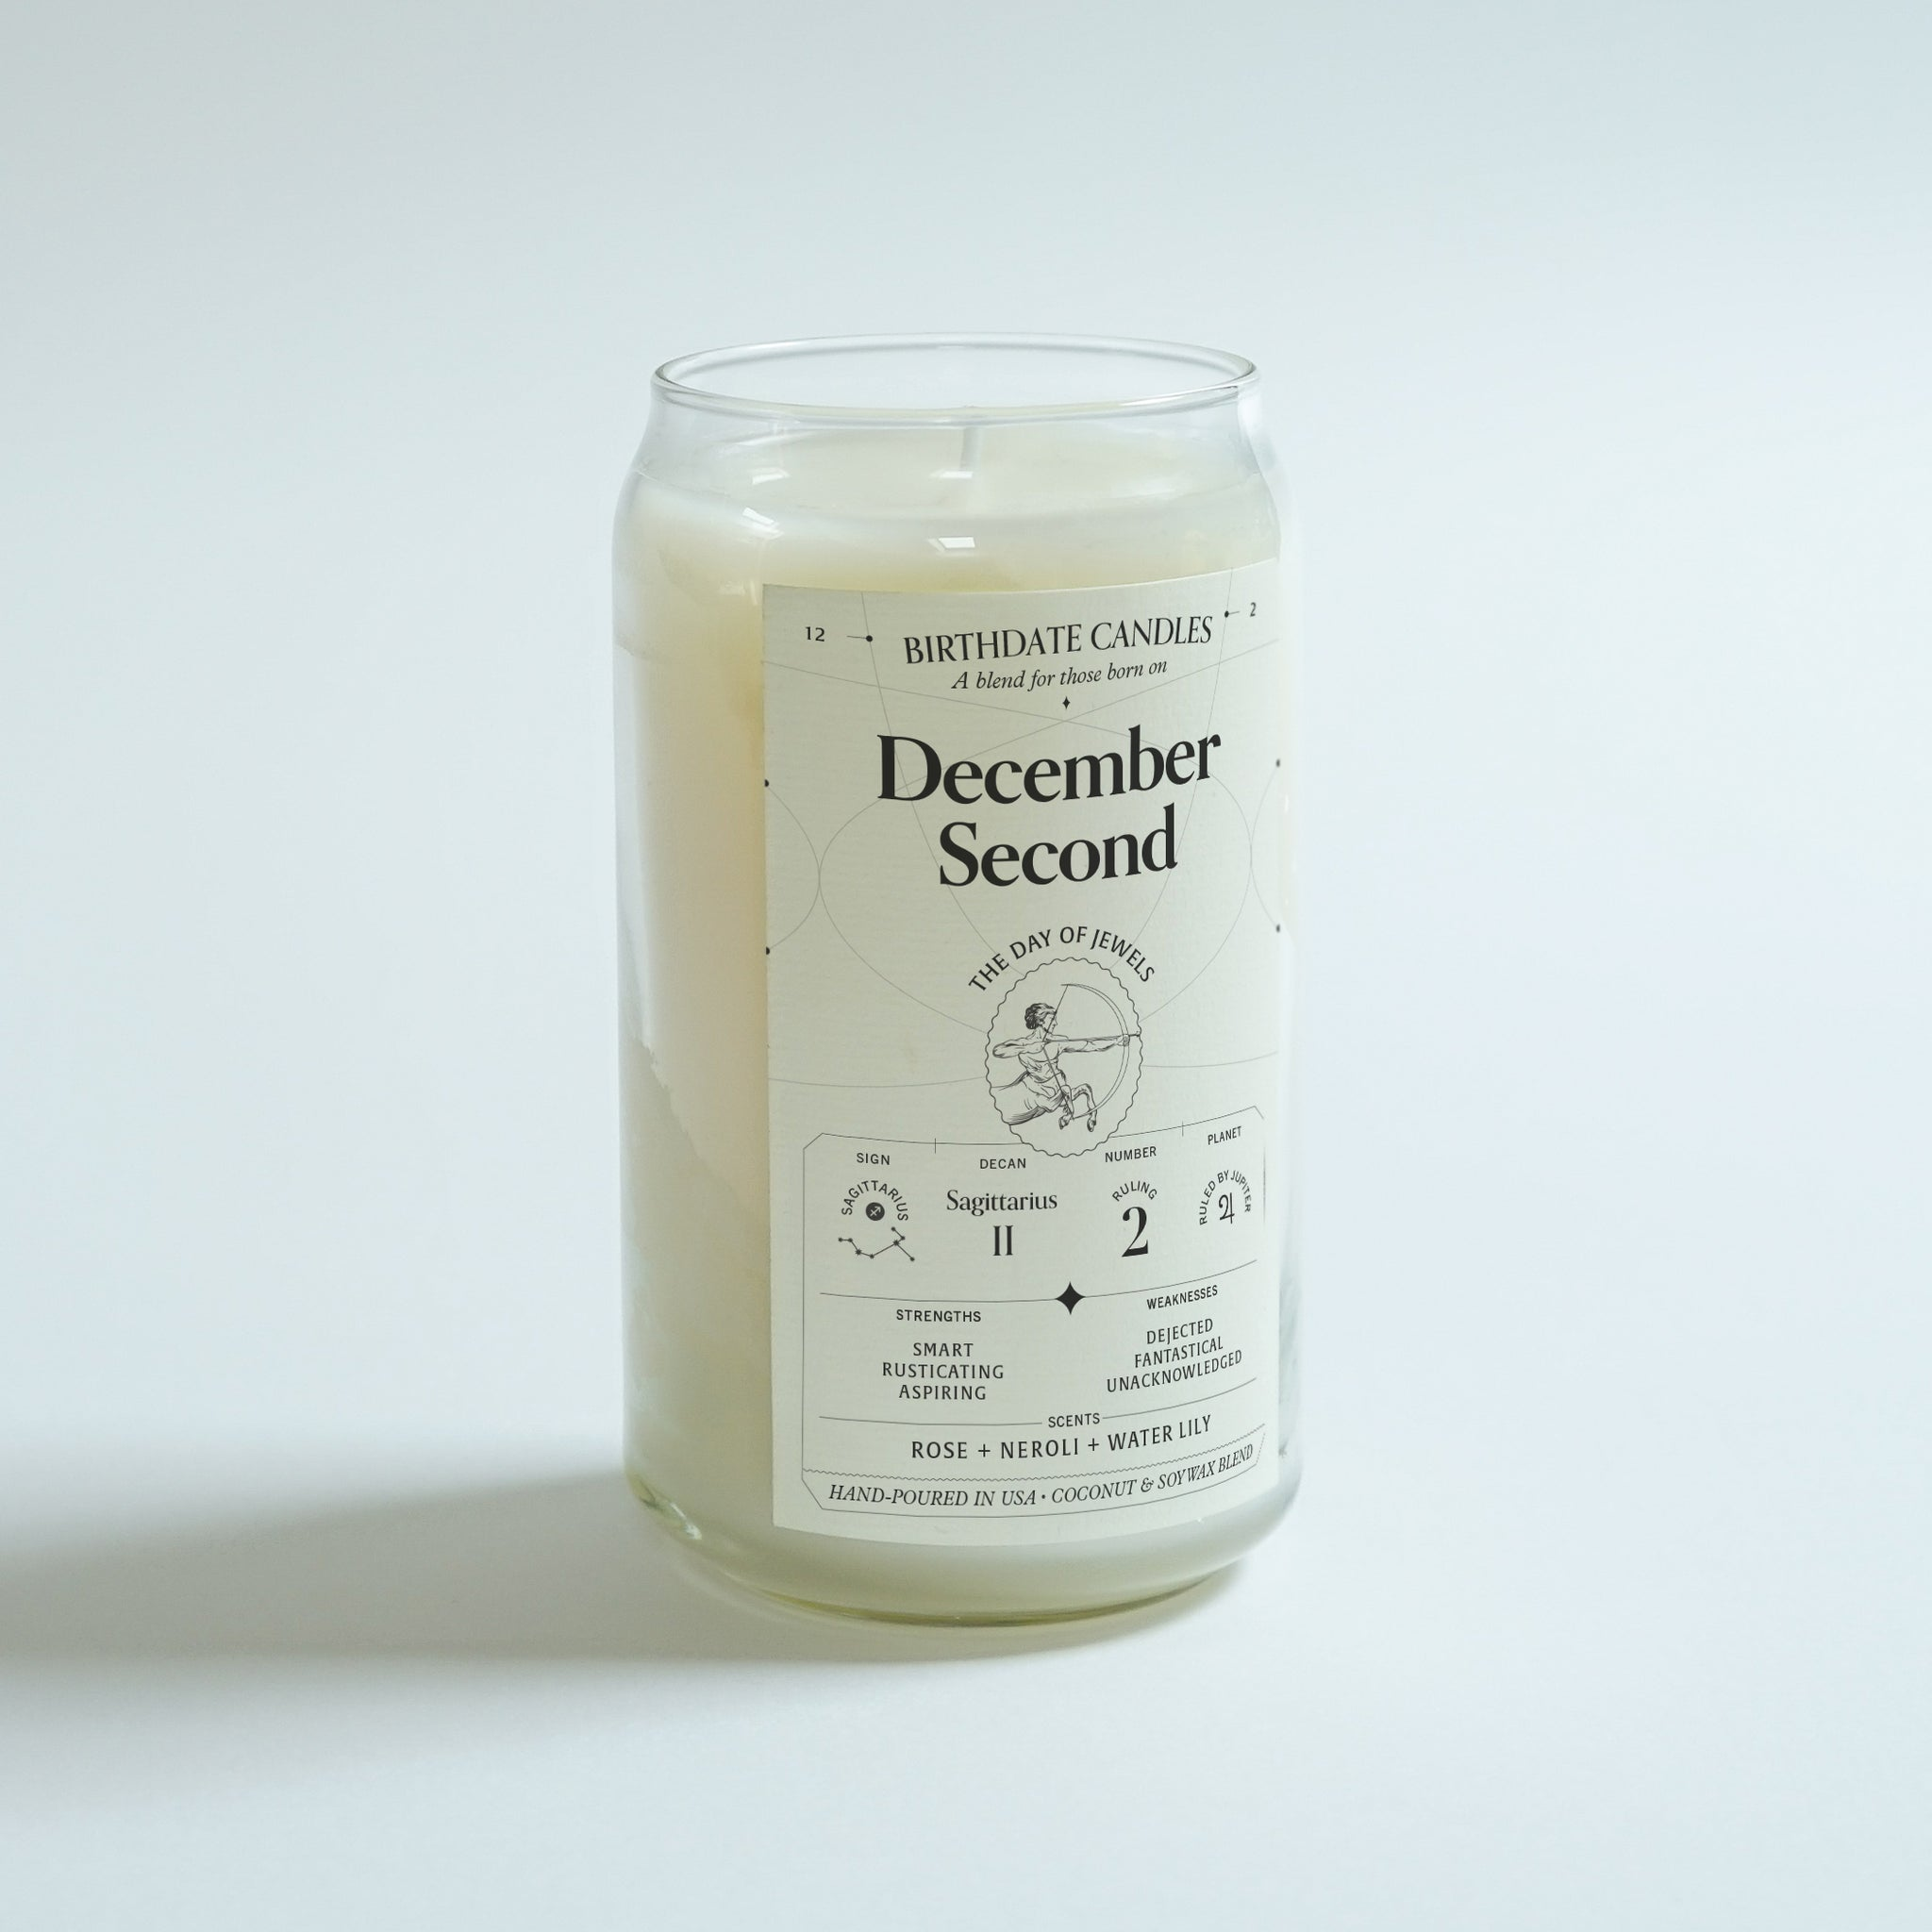 The December Second Candle